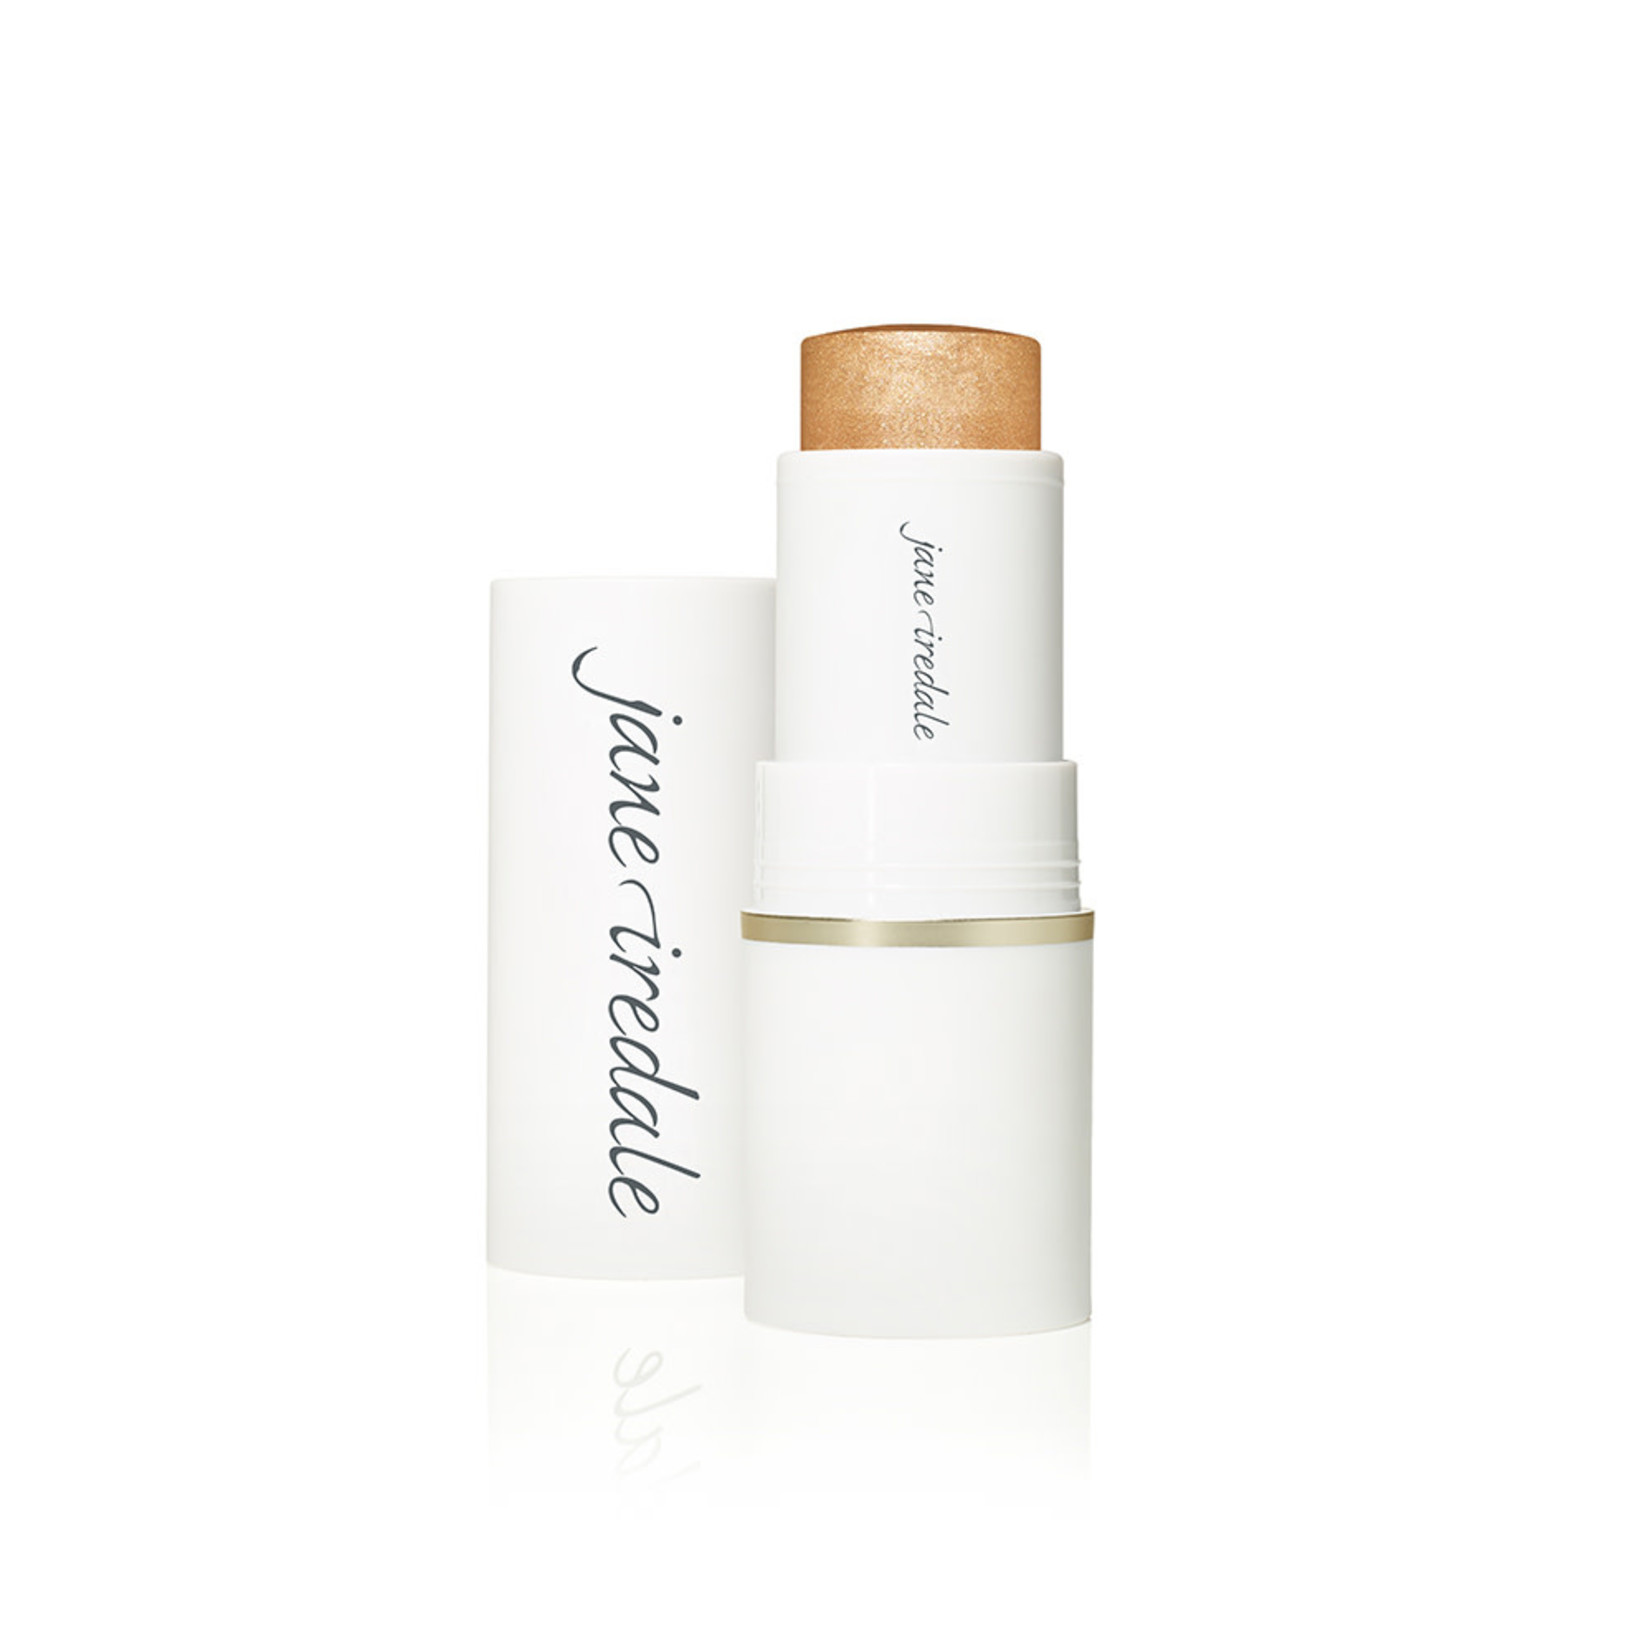 jane iredale Glow Time highlighter stick - Eclipse